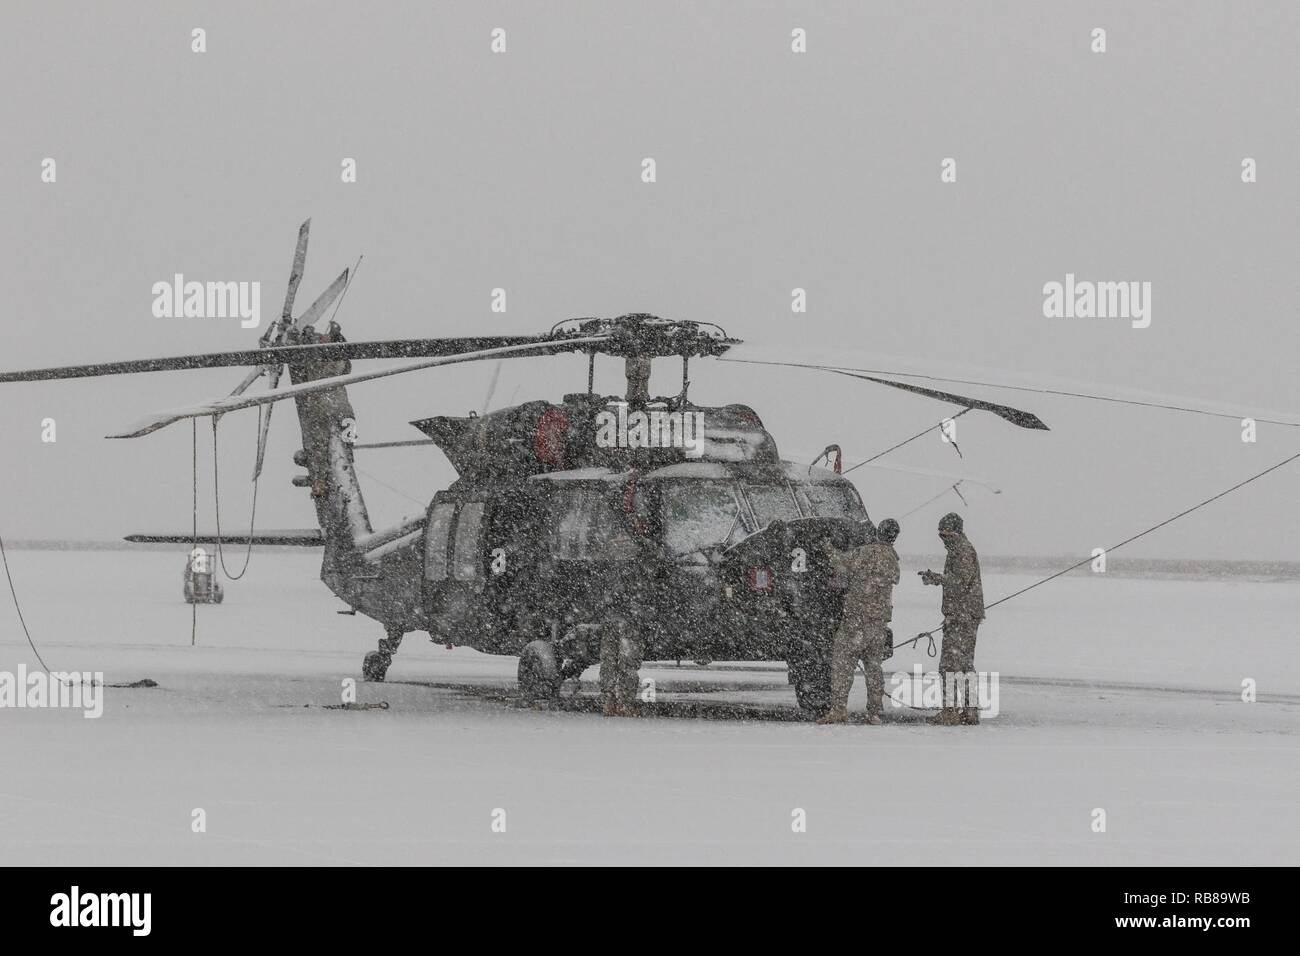 hight resolution of u s army uh 60m black hawk helicopter crew chiefs assigned to 16th combat aviation brigade 7th infantry division conduct aircraft maintenance at joint